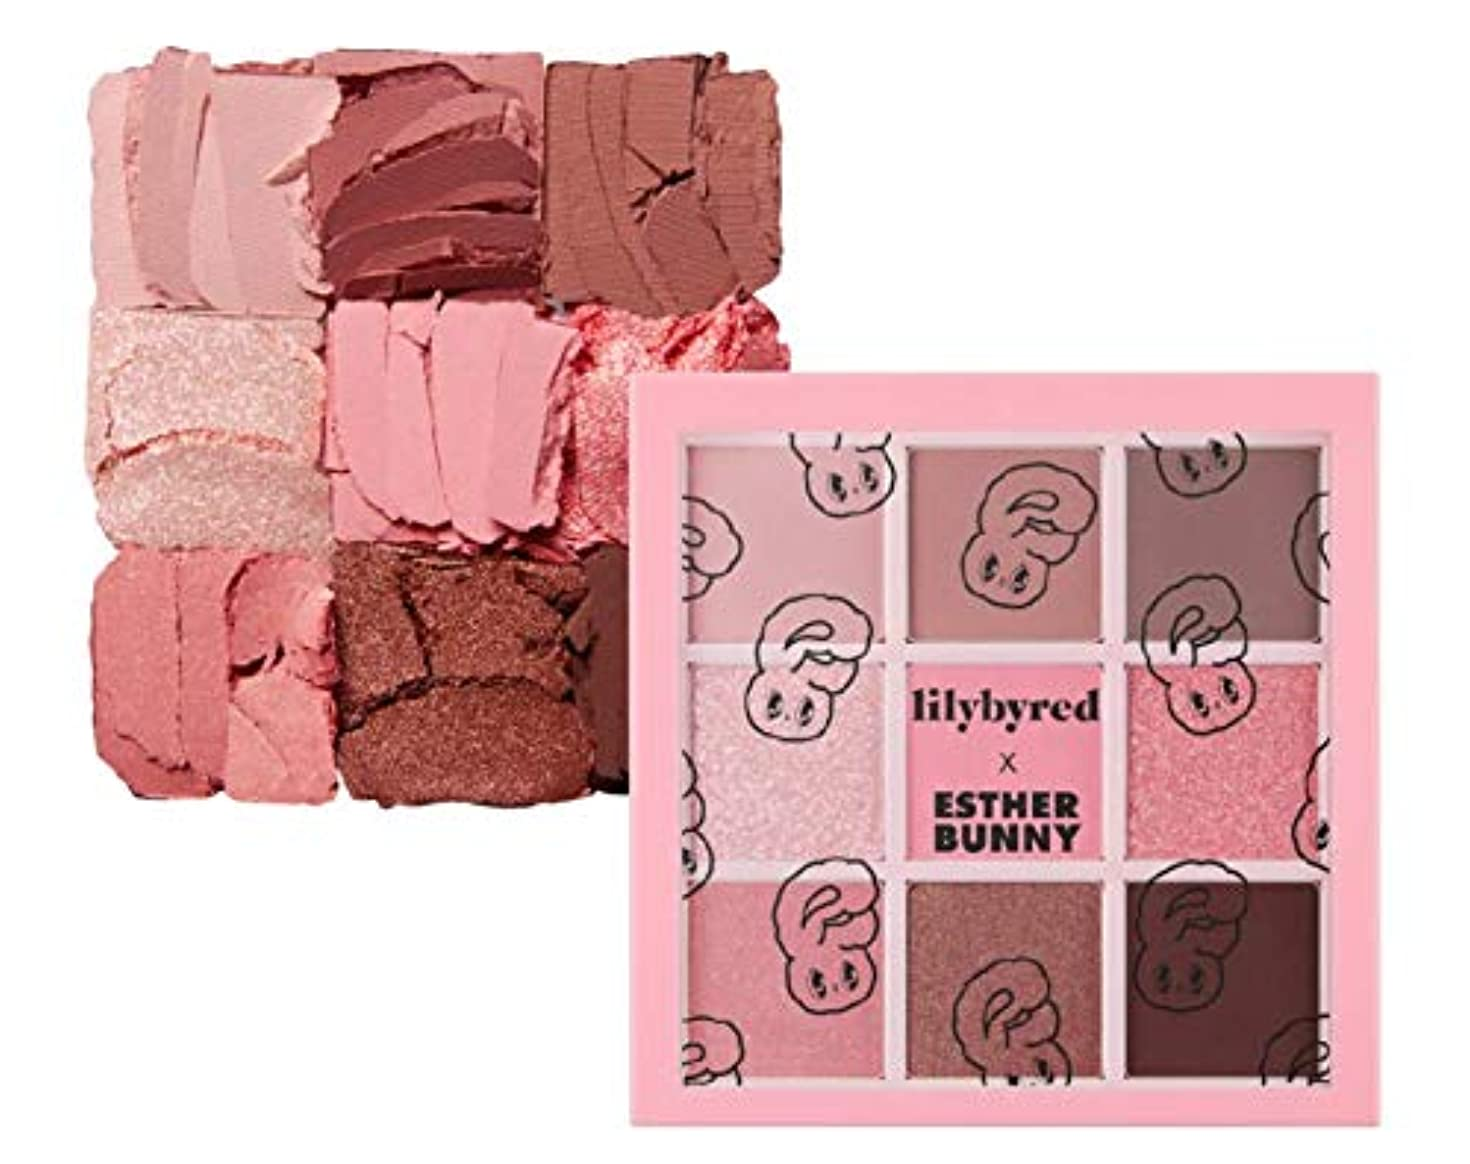 LILYBYRED [Esther Bunny Edition] ムードチートキット アイシャドウ パレット Mood Cheat Kit Eyeshadow Palette 02 Pink Sweets [並行輸入品]